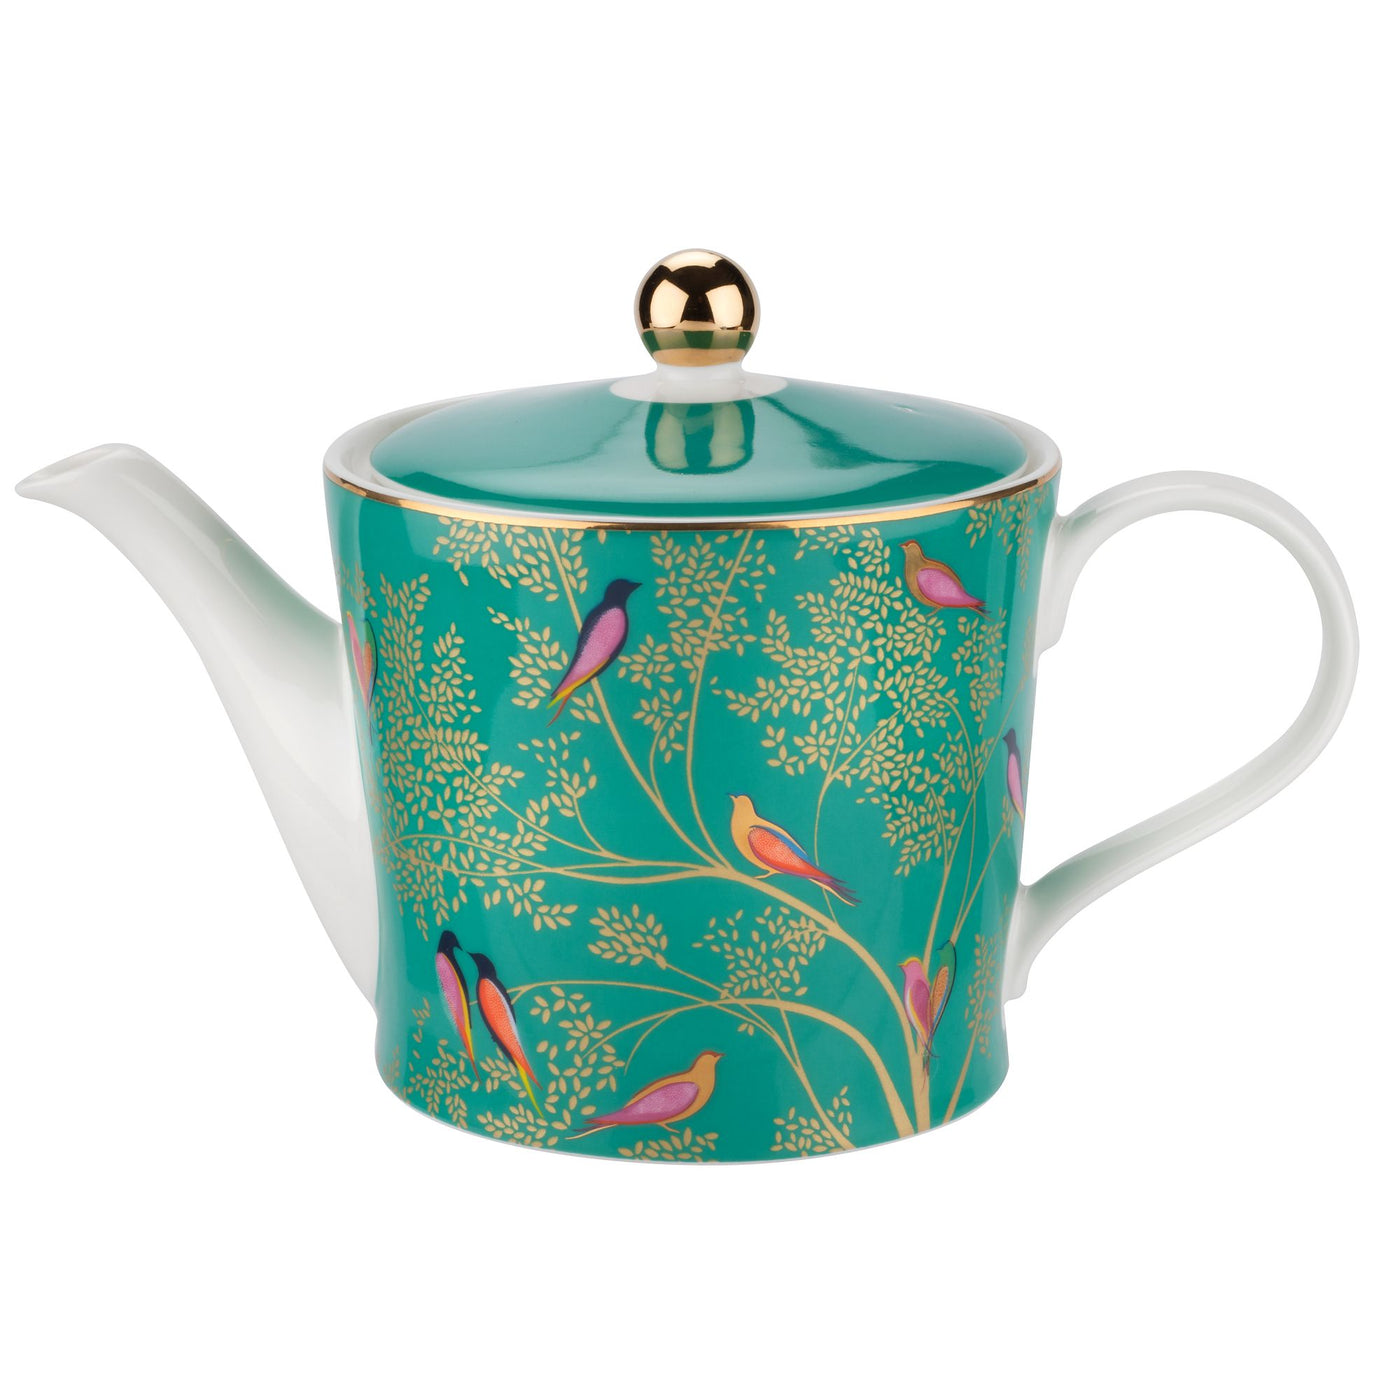 Chelsea Tea Pot in Green